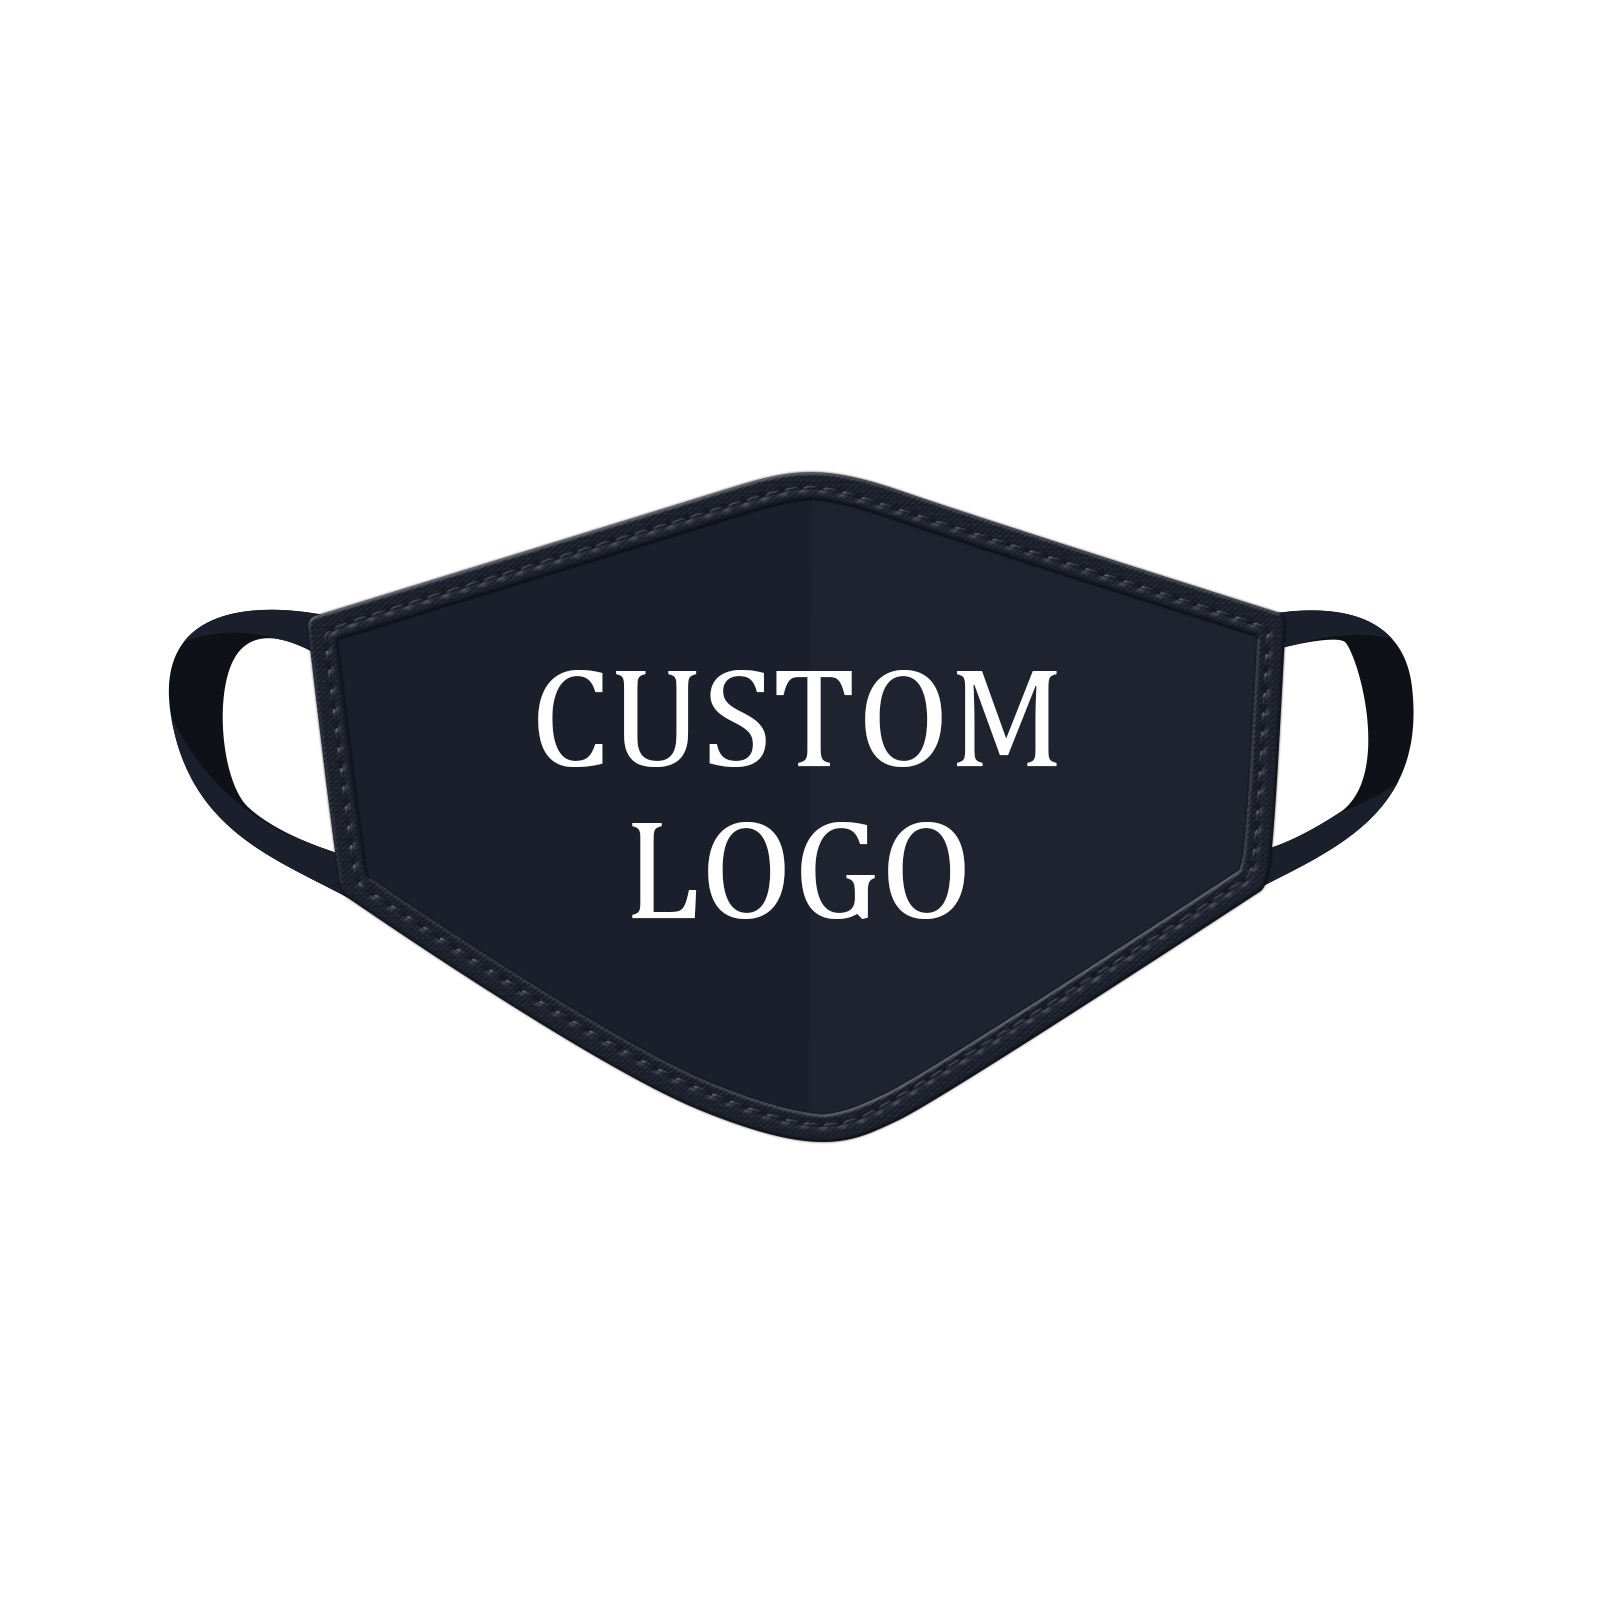 Fast delivery free sample custom logo brand mix color men women adult and kids size polyester cotton face maskes